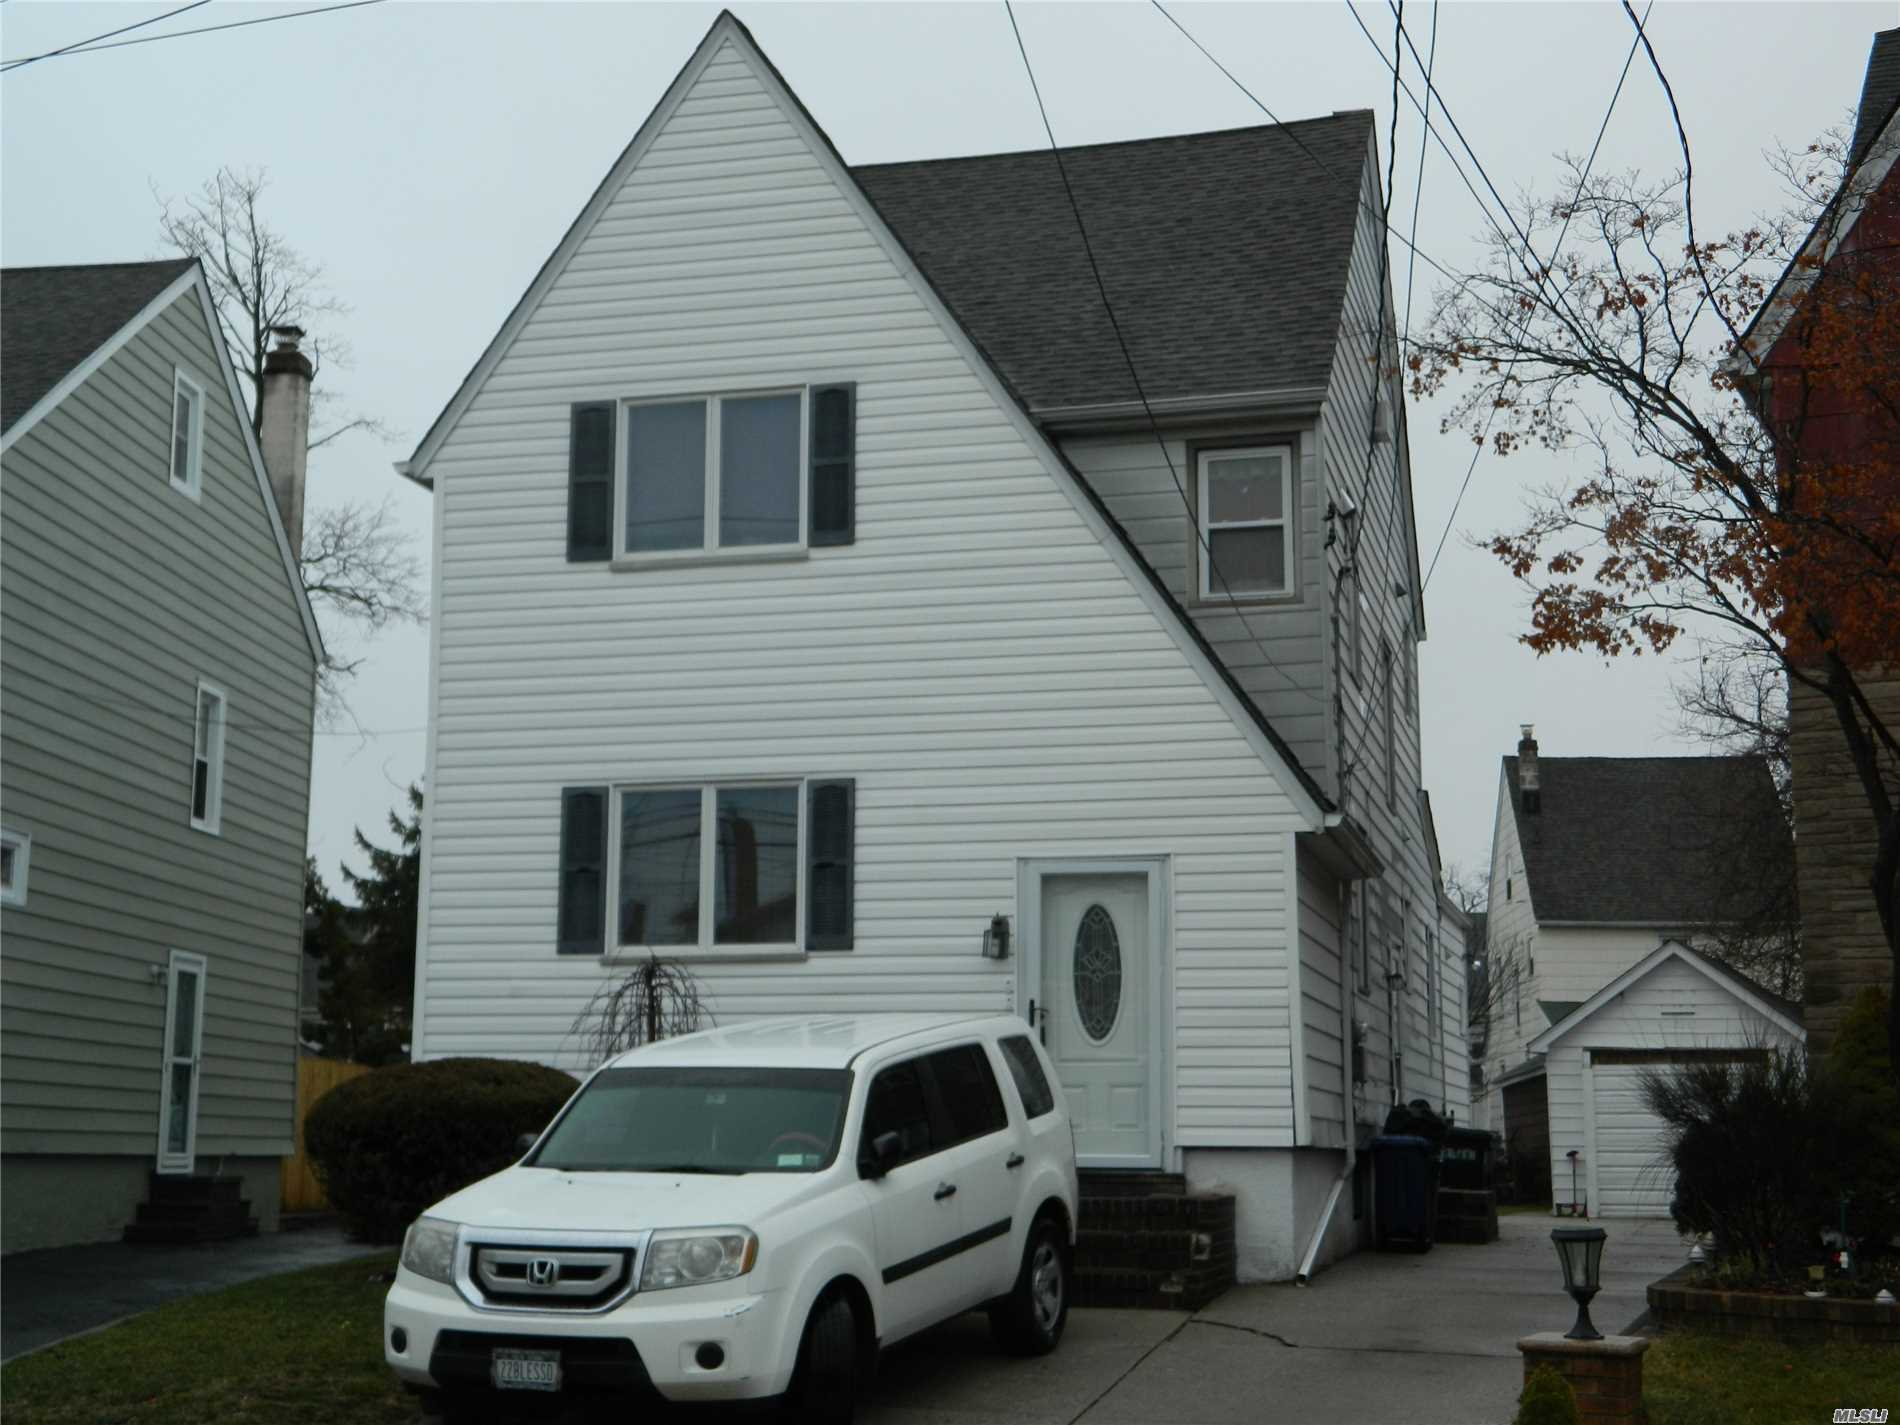 2nd Floor, Living rm/ Dining area, Modern Kitchen w/ Granite Counter tops. Stainless Steel Appliances,  3 Floor 2 Brs. Hardwood Floors Throughout. All Utility's included in, how ever summer few Months pay addition $25 for usage of Air conditions. offer 1 Car parking Only. 1 Block from Gibson LIRR station.